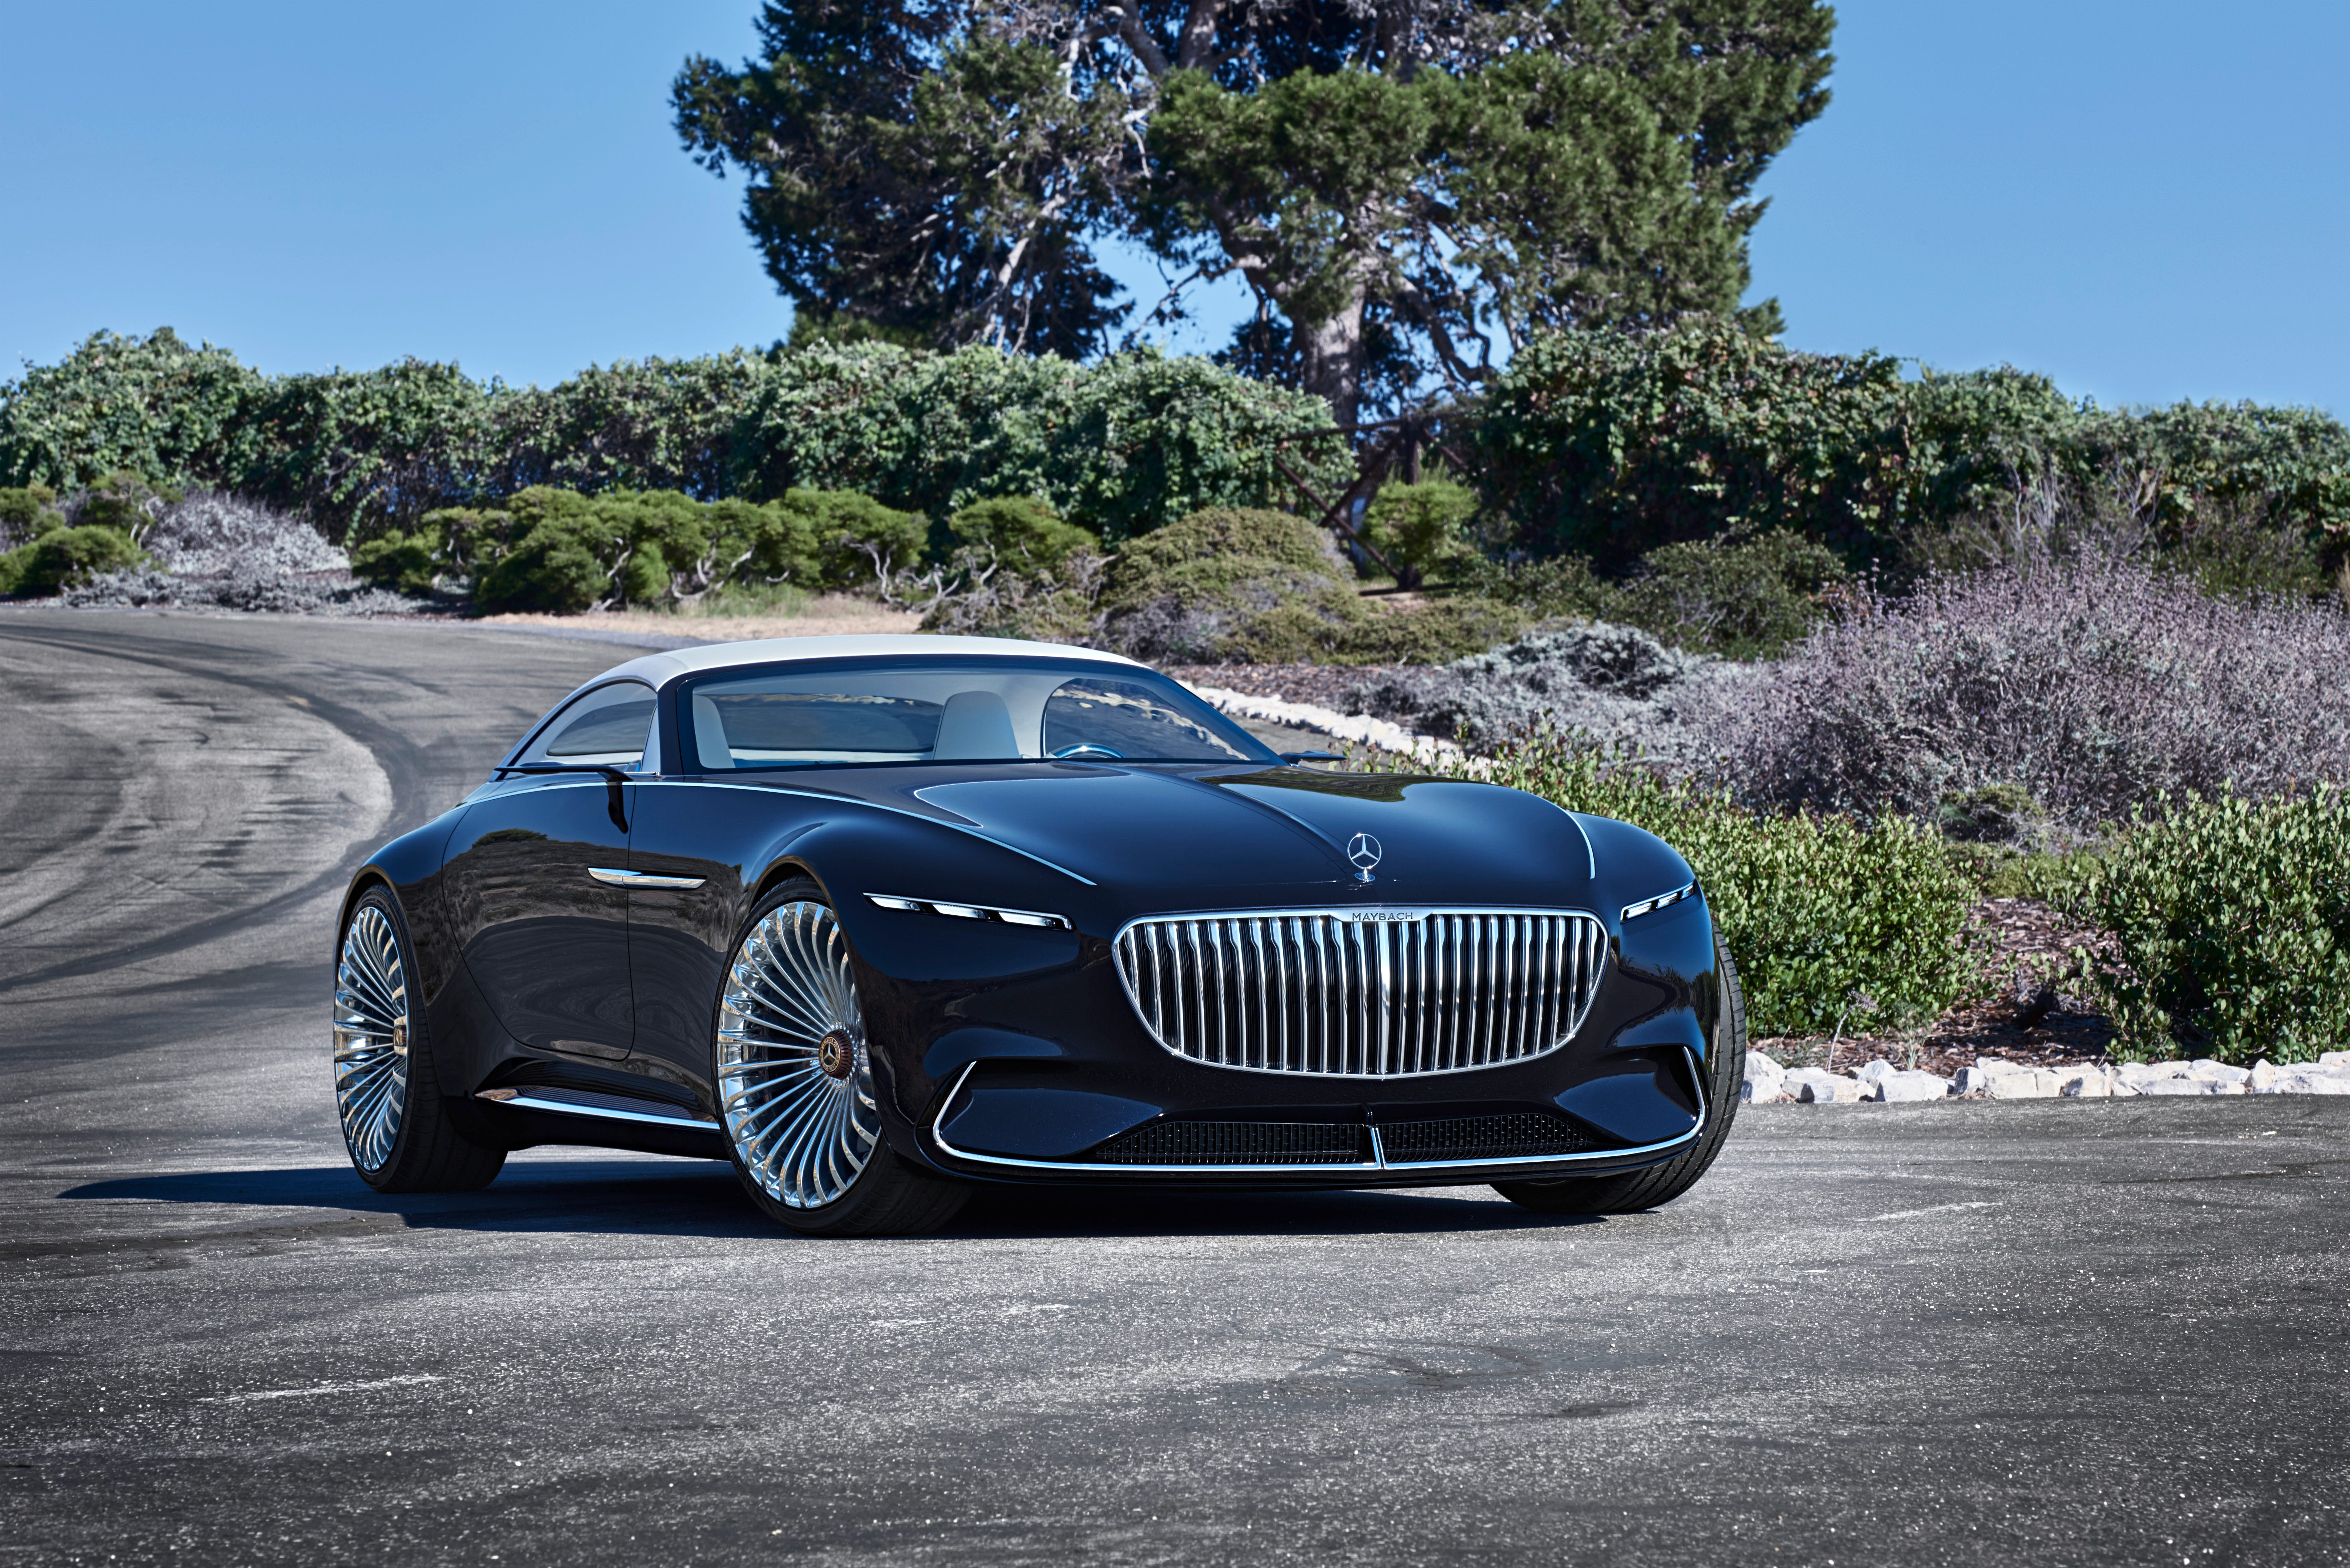 Mercedes-Benz shows off its Mercedes-Maybach 6 Cabriolet